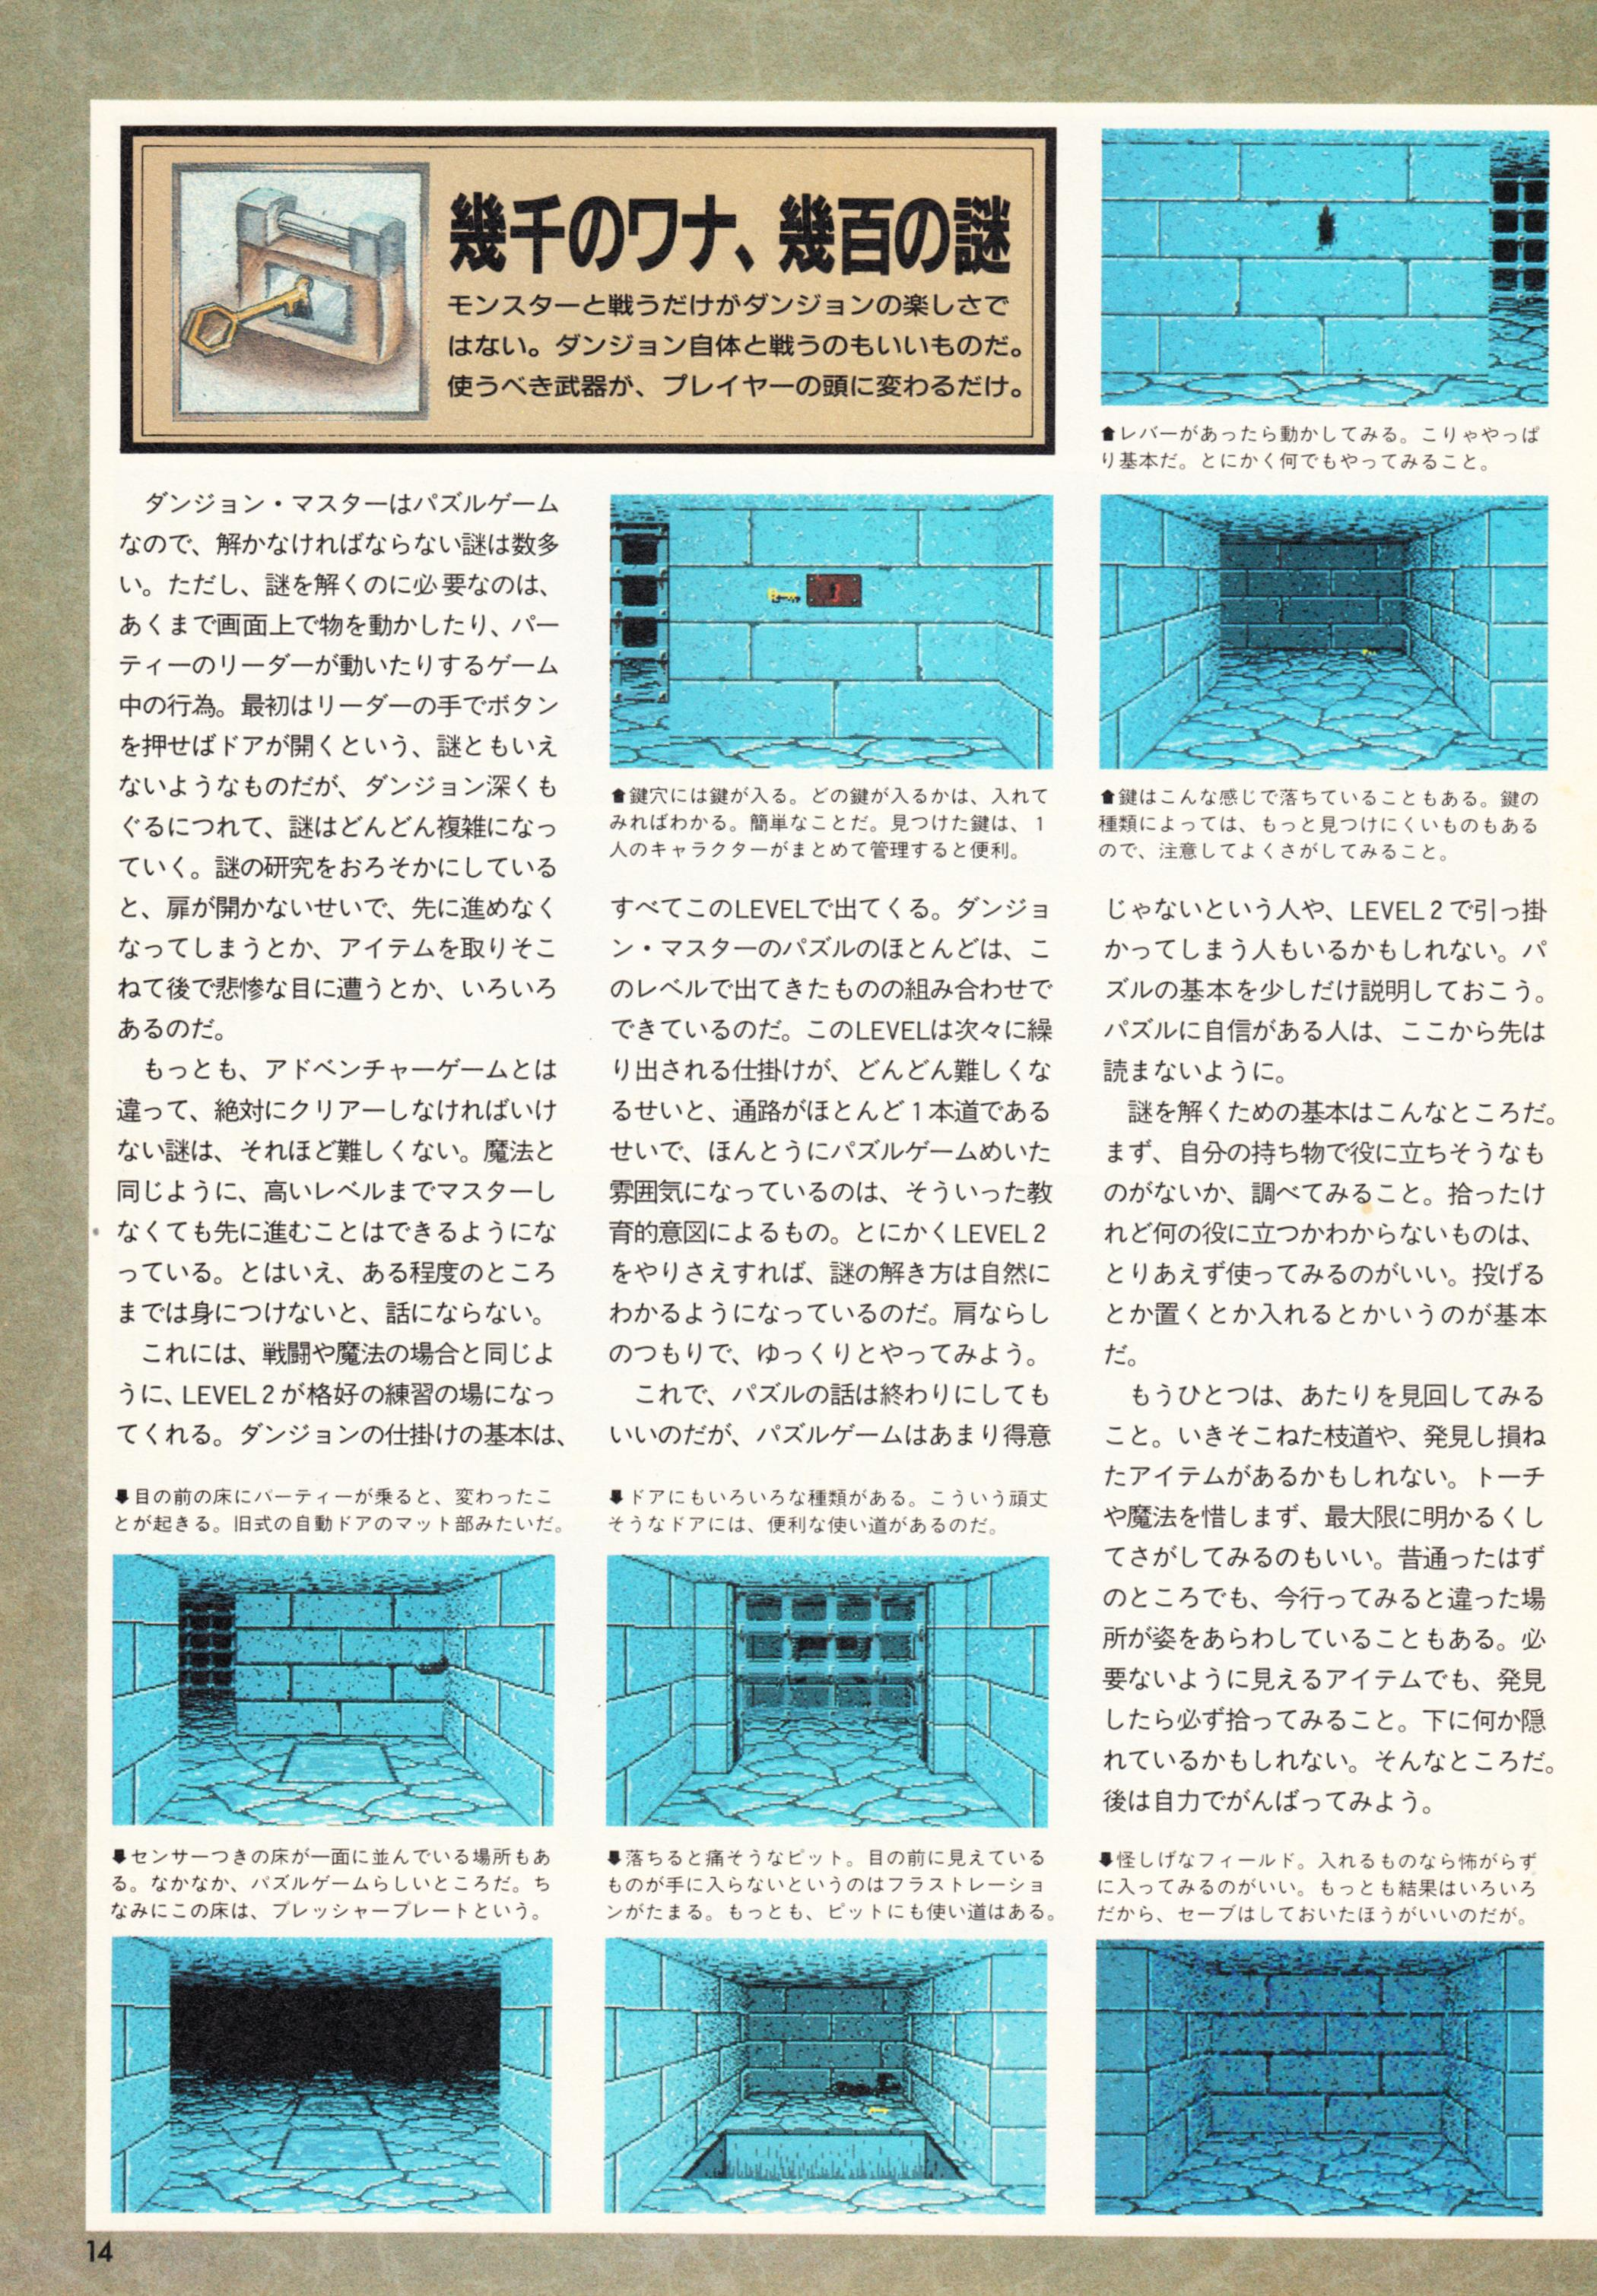 Special Supplement 2 - Dungeon Master Guide published in Japanese magazine 'Login', Vol 9 No 3 02 February 1990, Page 14